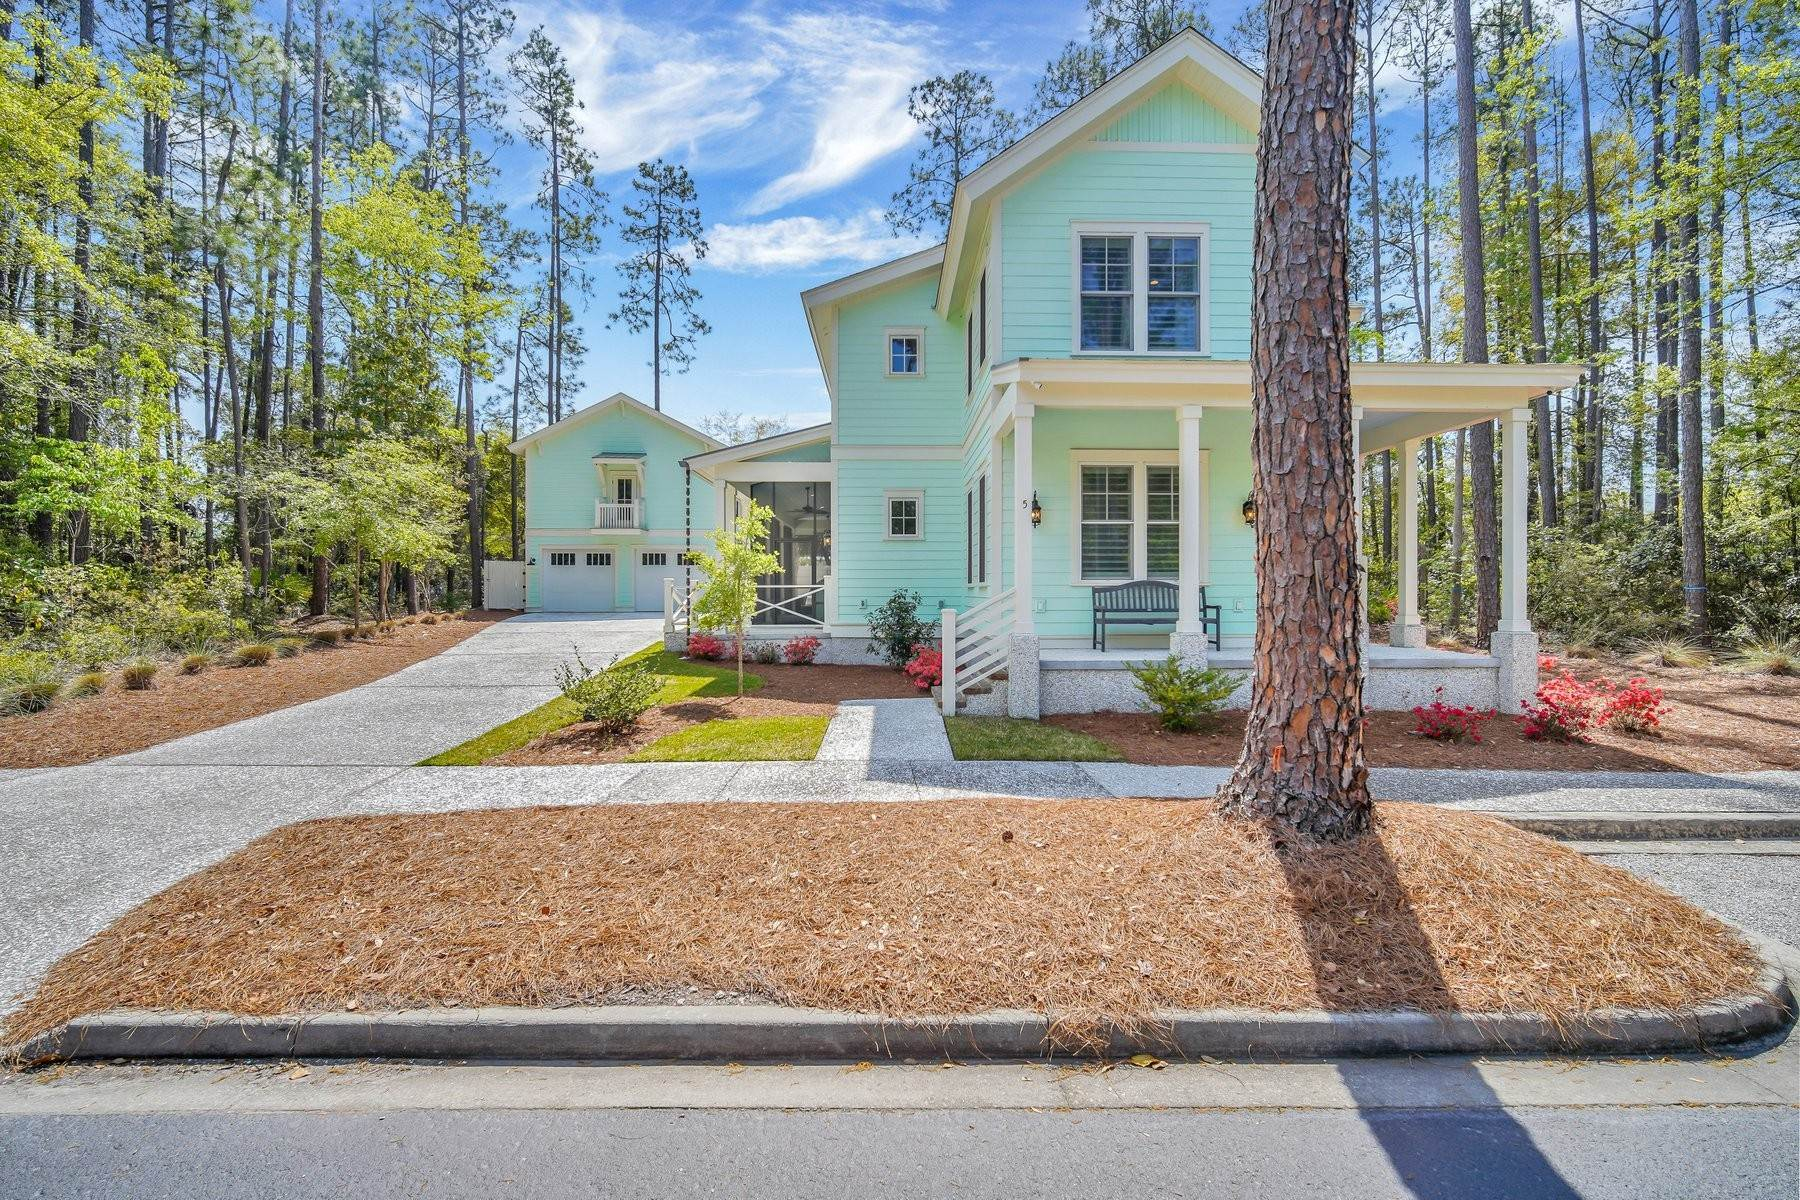 Property for Sale at LIVE IN OLD TOWN 5 Pearl Street Bluffton, South Carolina 29910 United States